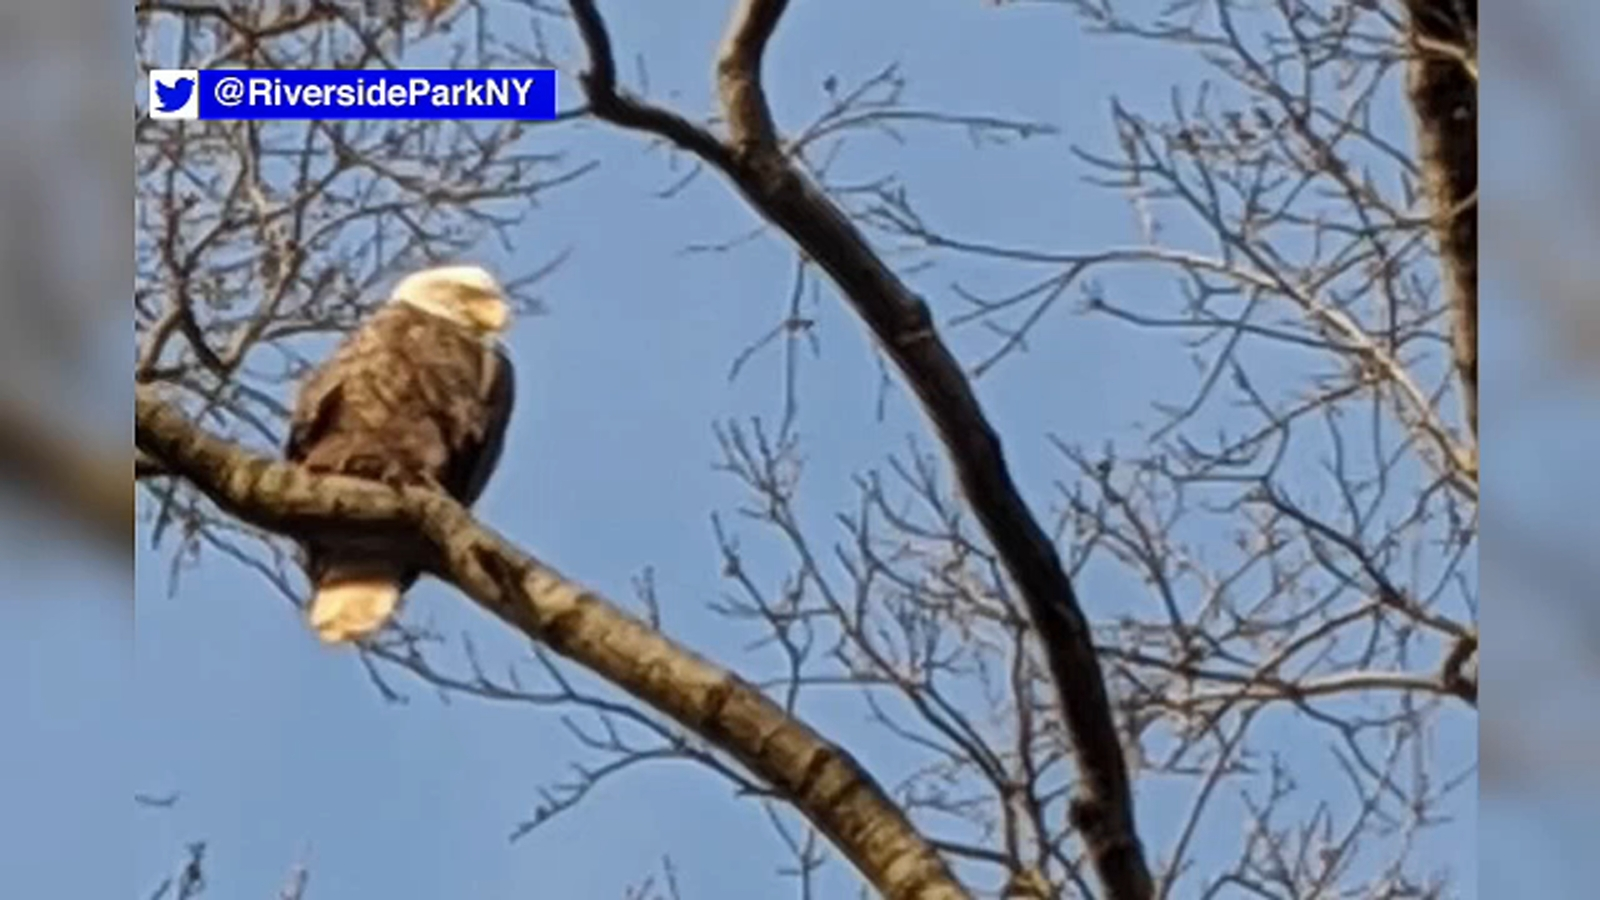 Majestic bald eagle spotted over Riverside Park in NYC